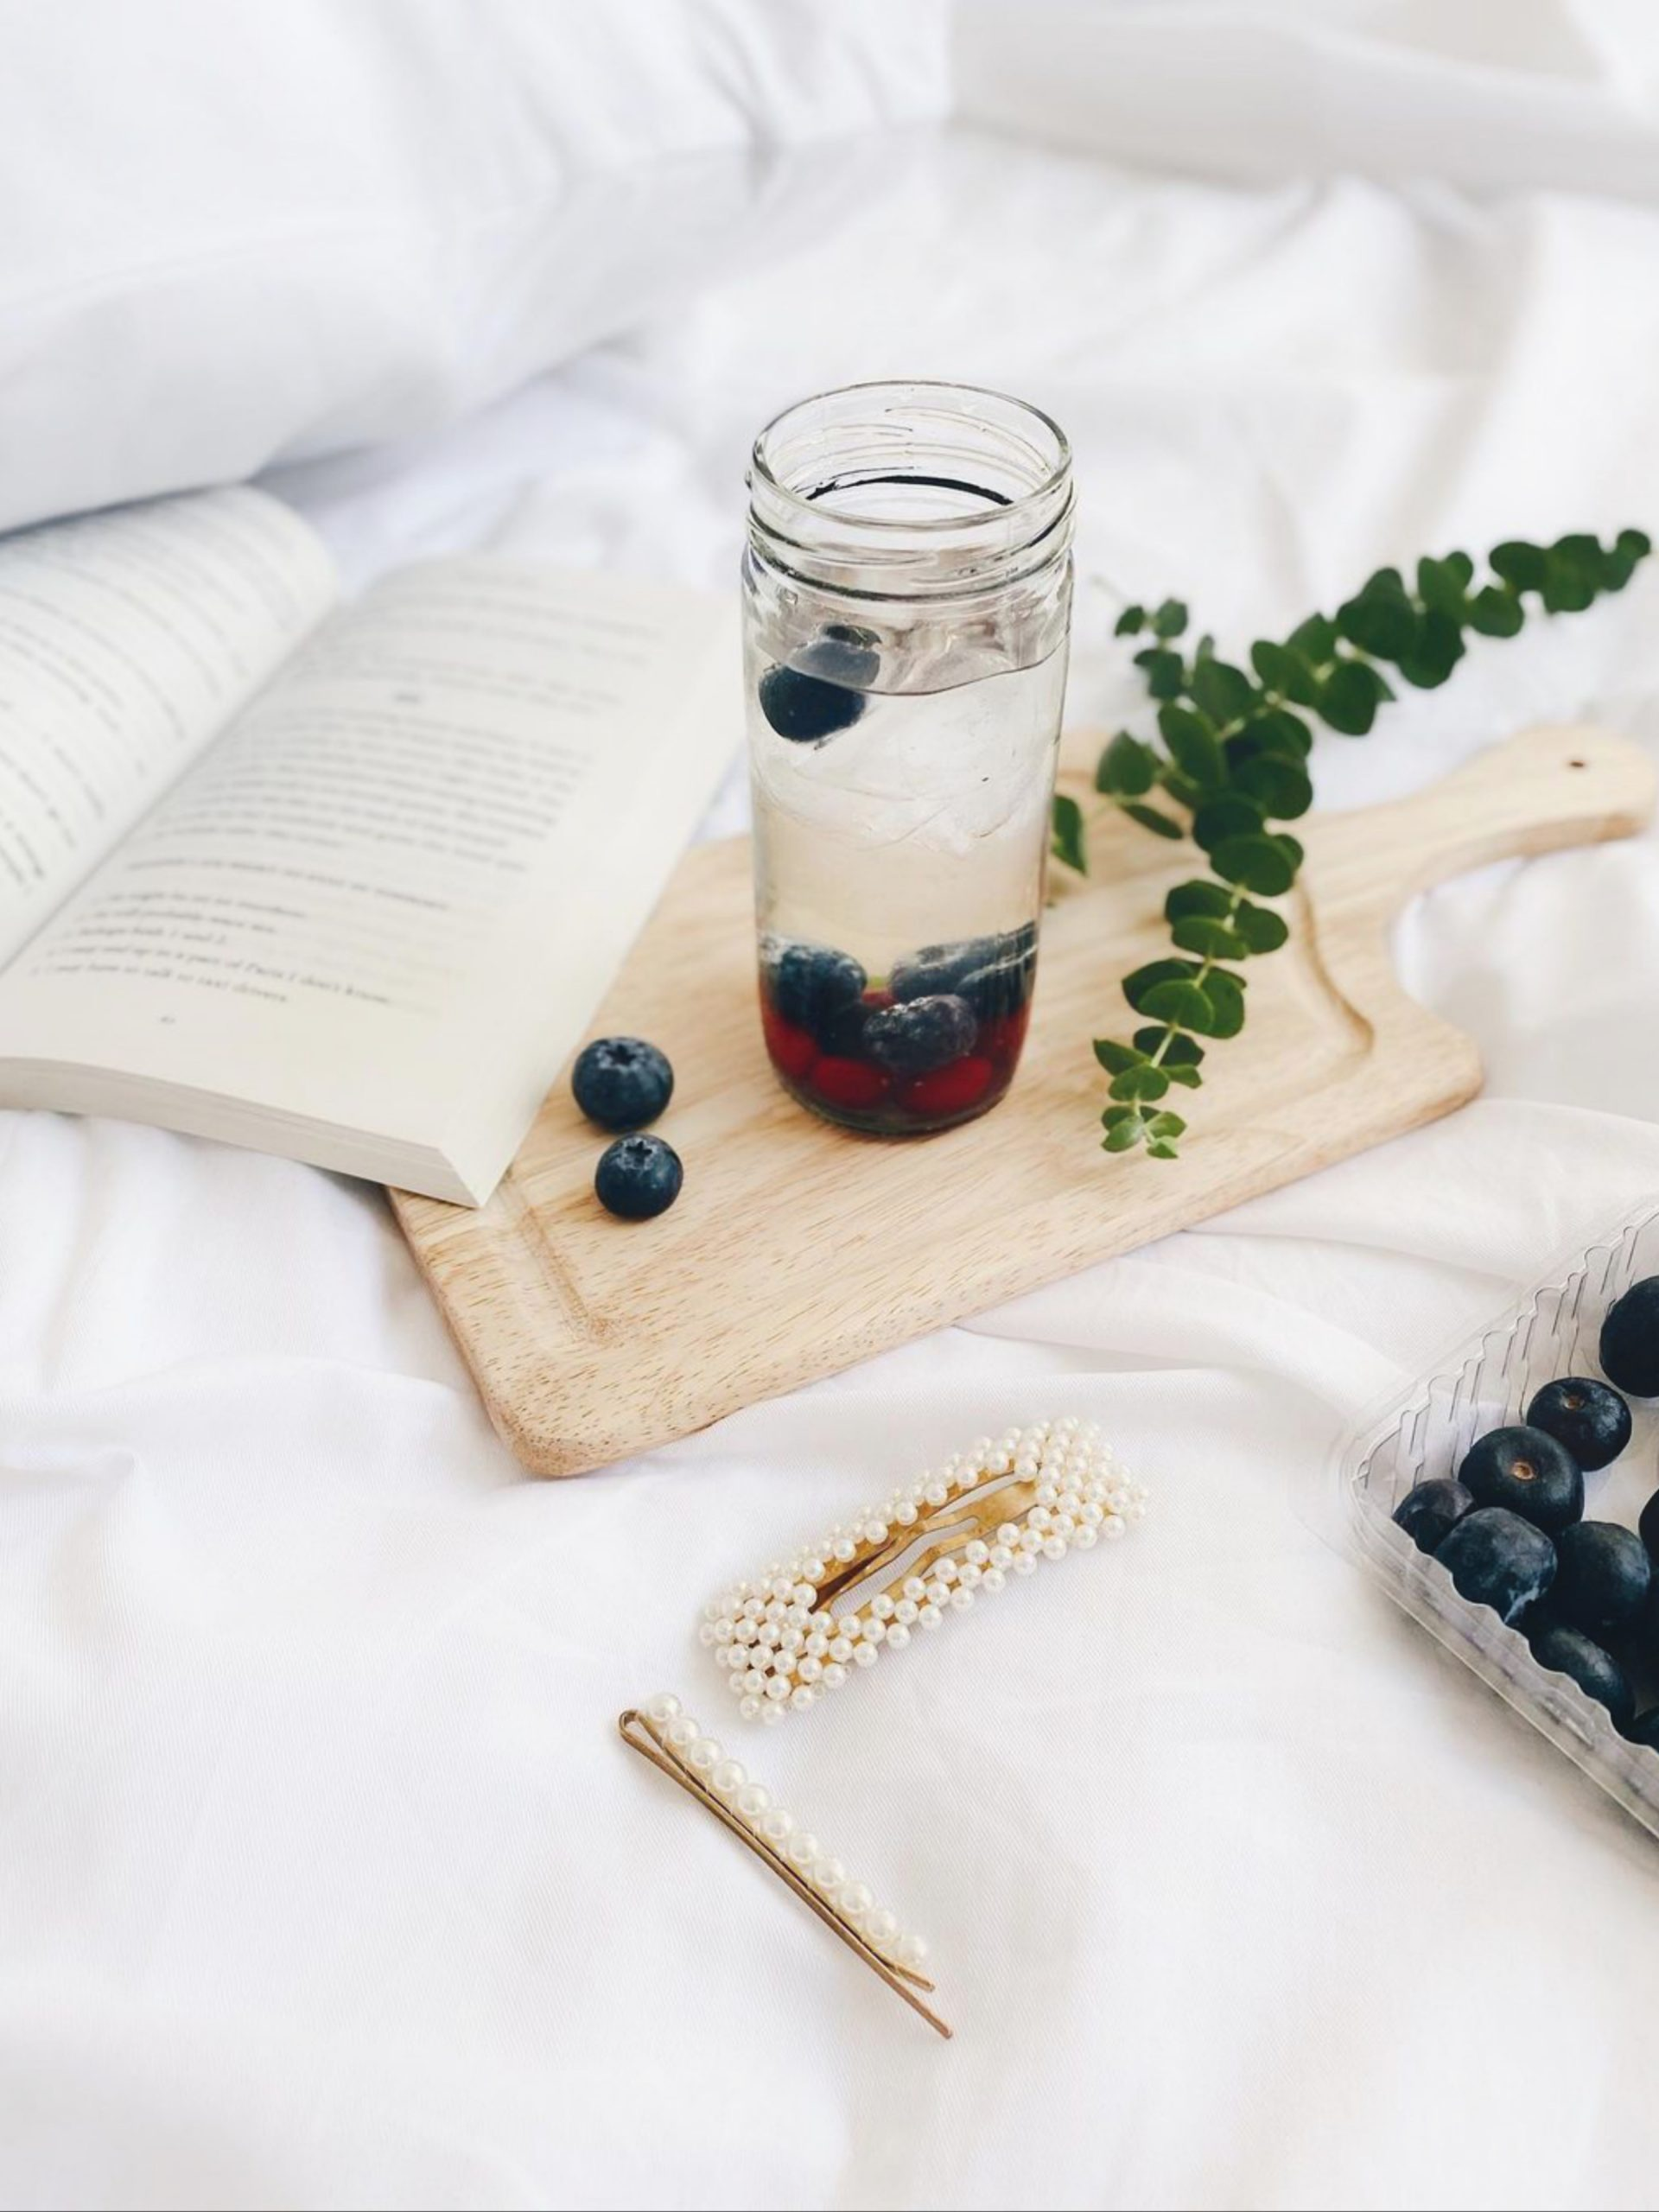 Books and berry flatlay